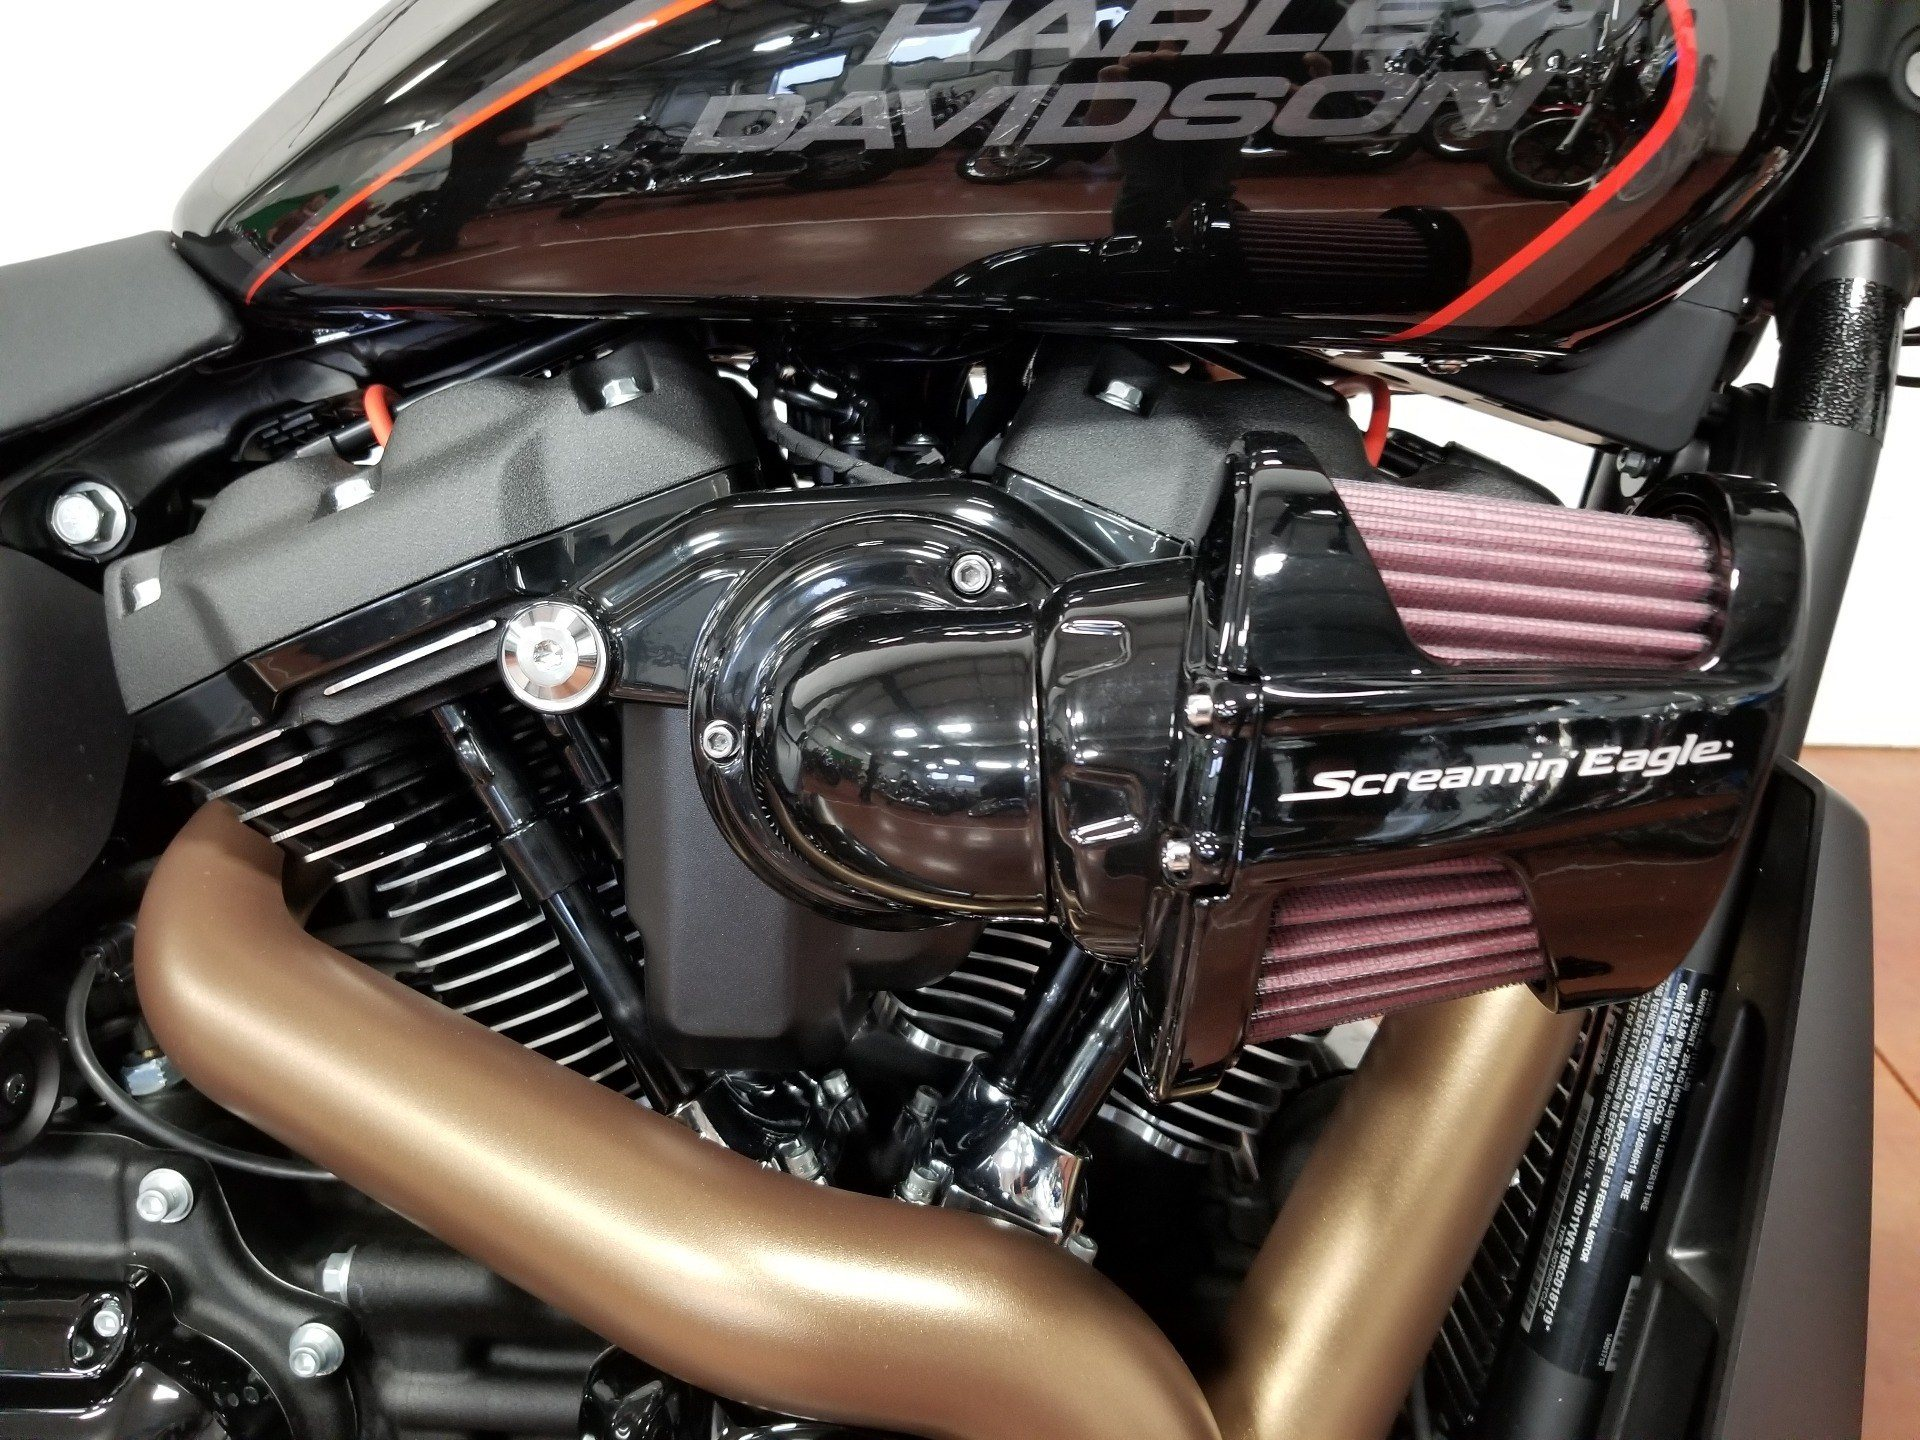 New 2019 Harley Davidson Fxdr 114 Motorcycles In: New 2019 Harley-Davidson FXDR™ 114 Motorcycles In Sunbury